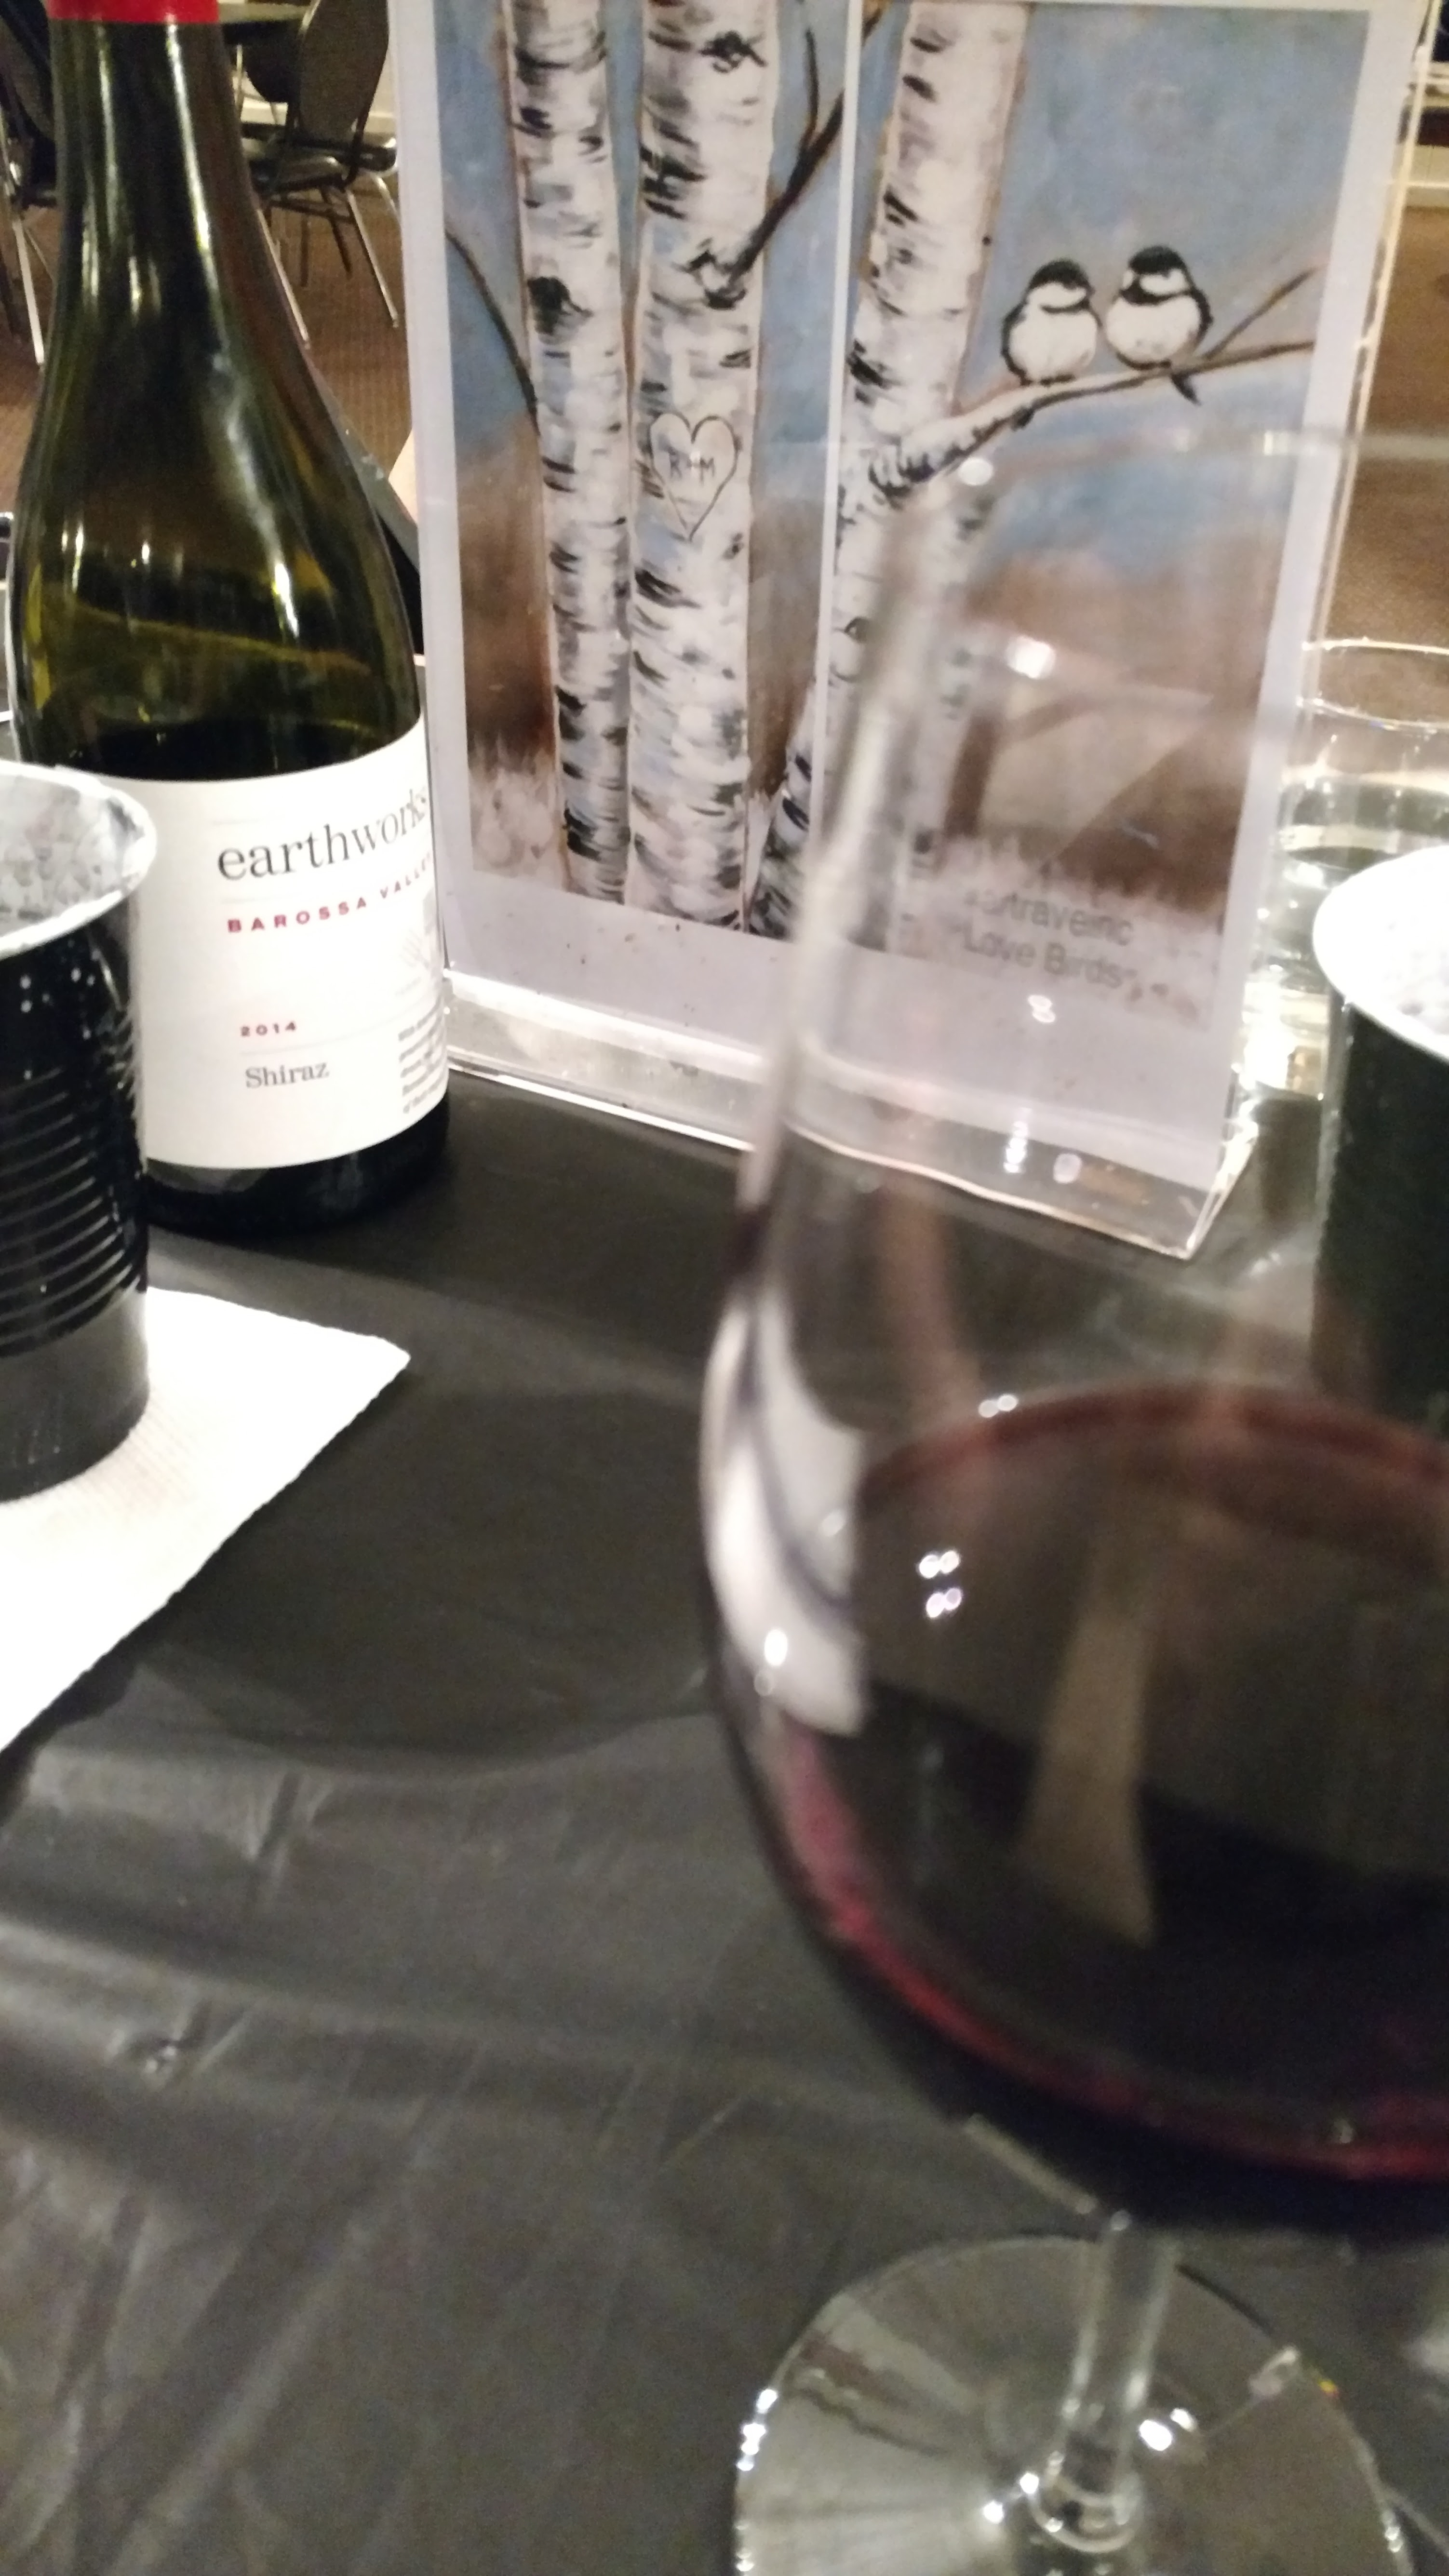 Paint Party and Drinking Wine - Tips for serving wine at parties